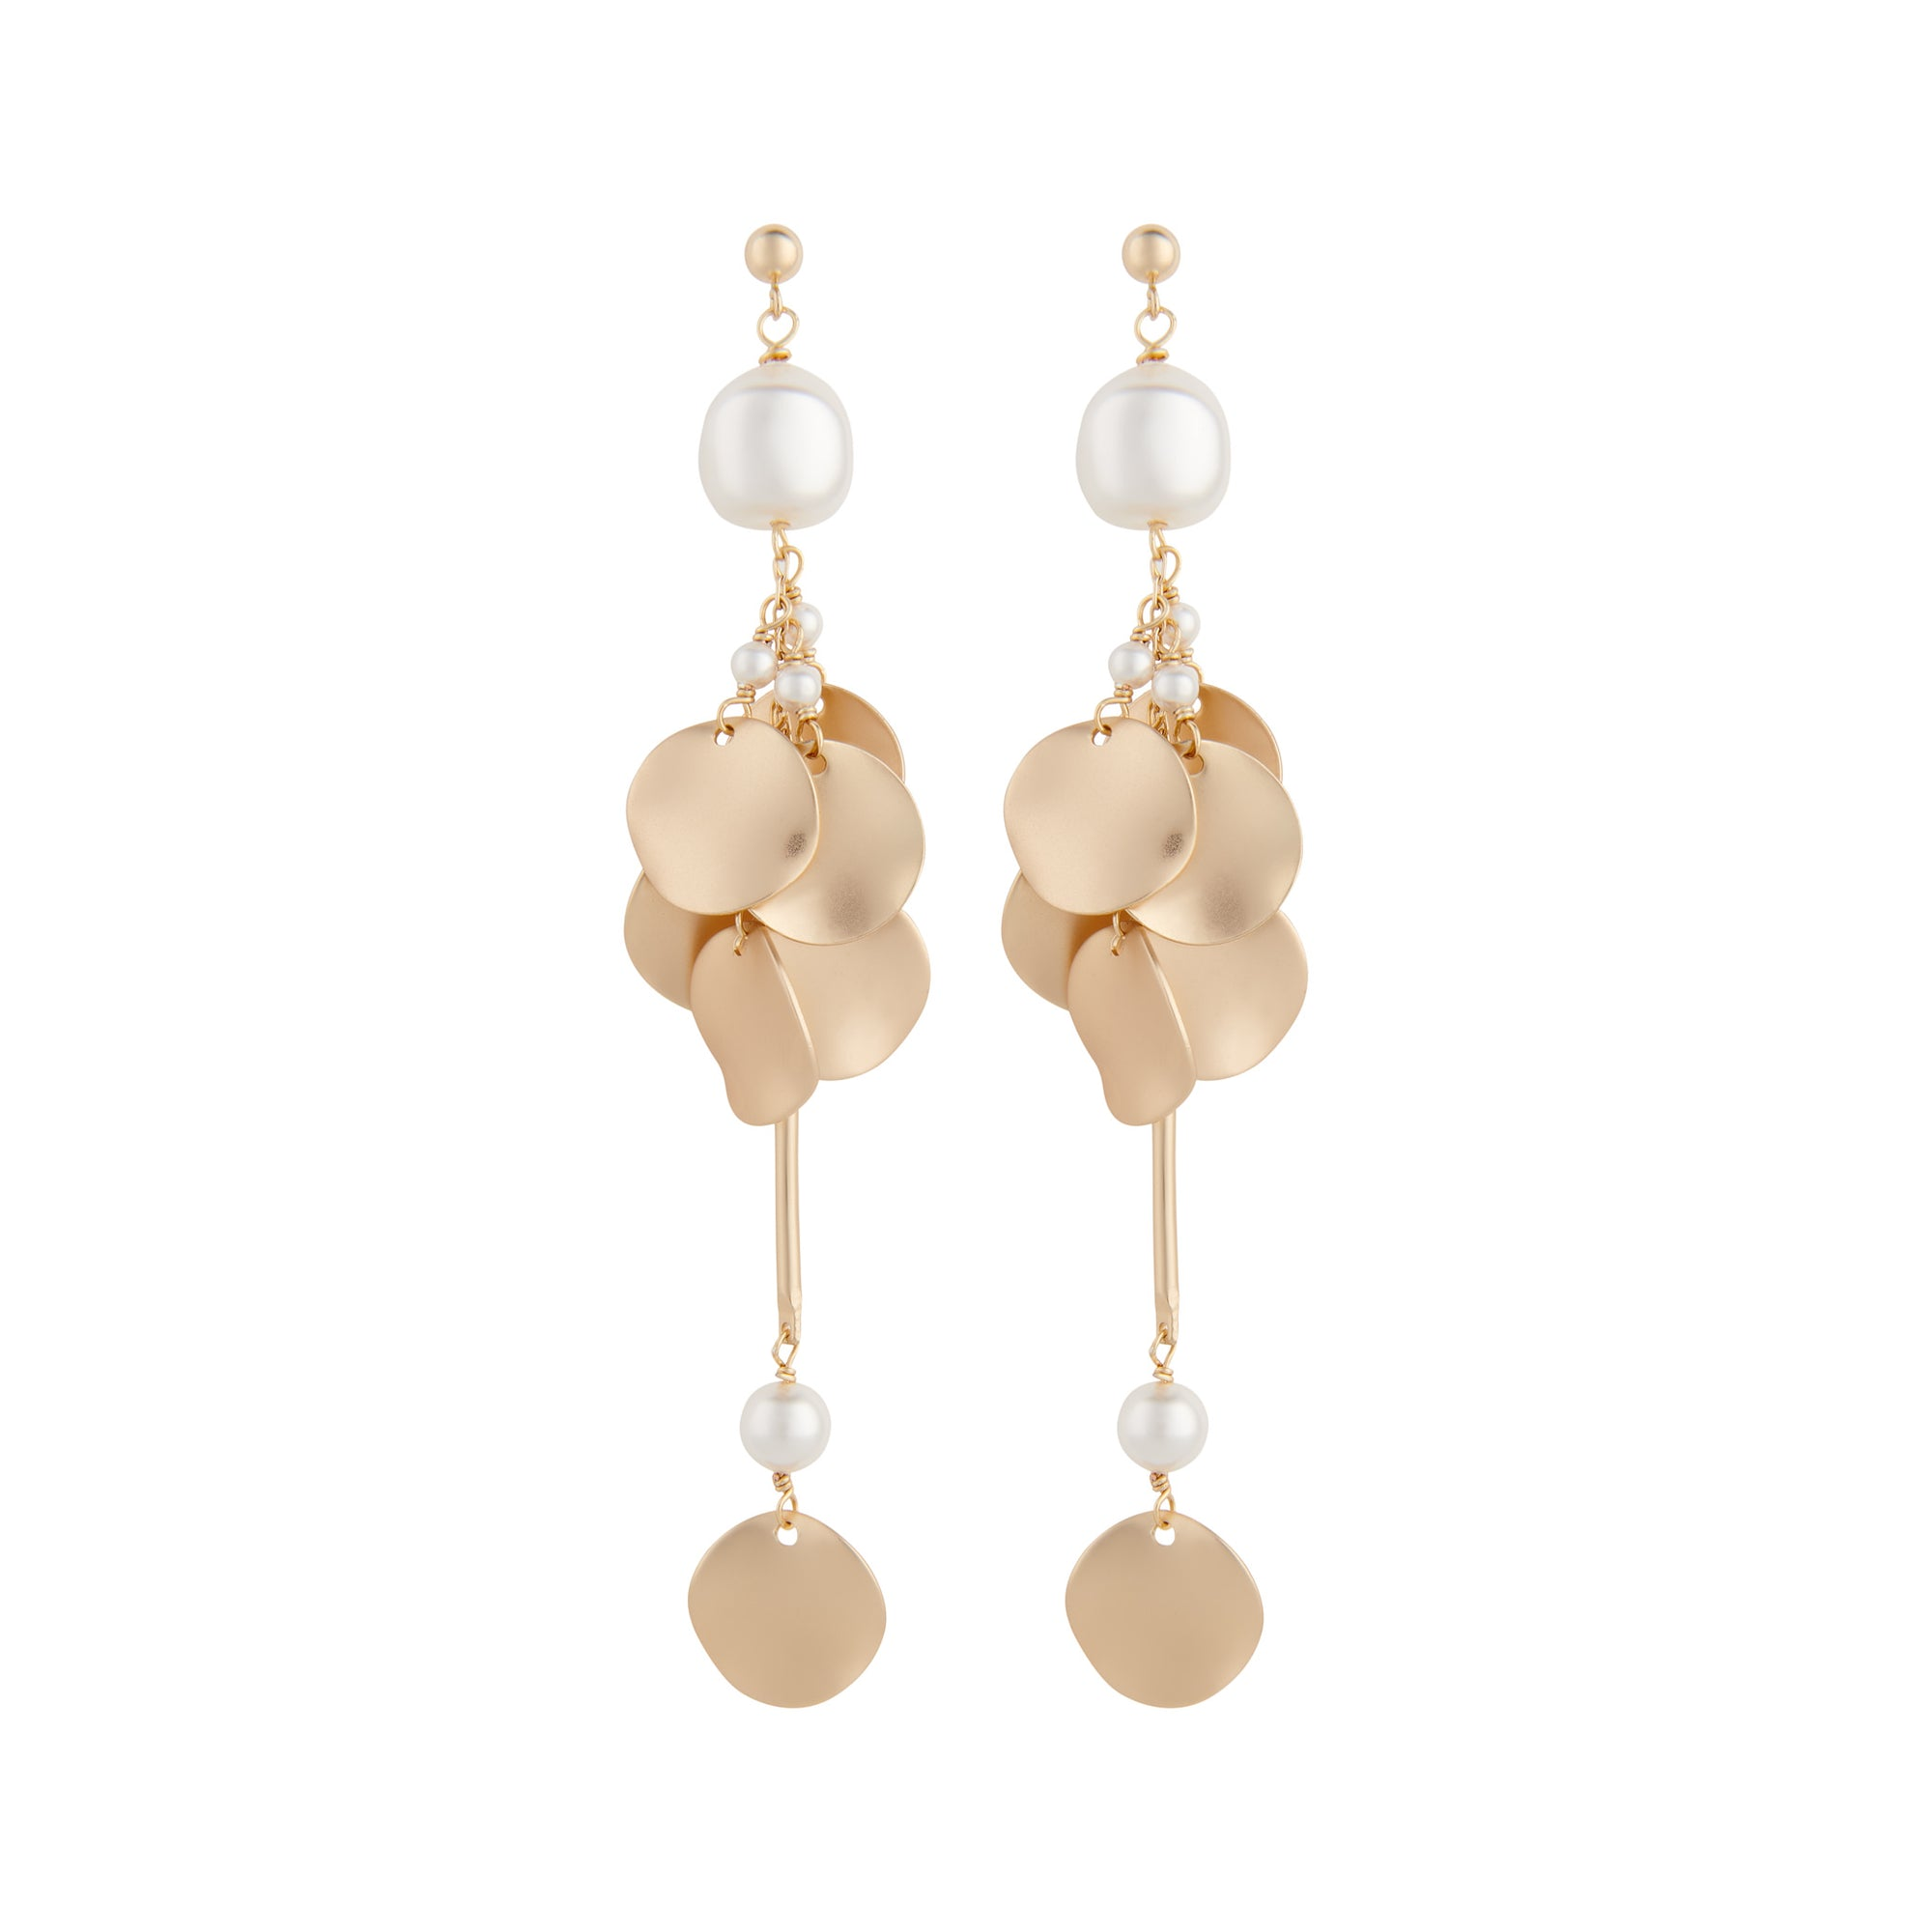 Matte gold ripple disc statement earrings with white pearls by vivien walsh